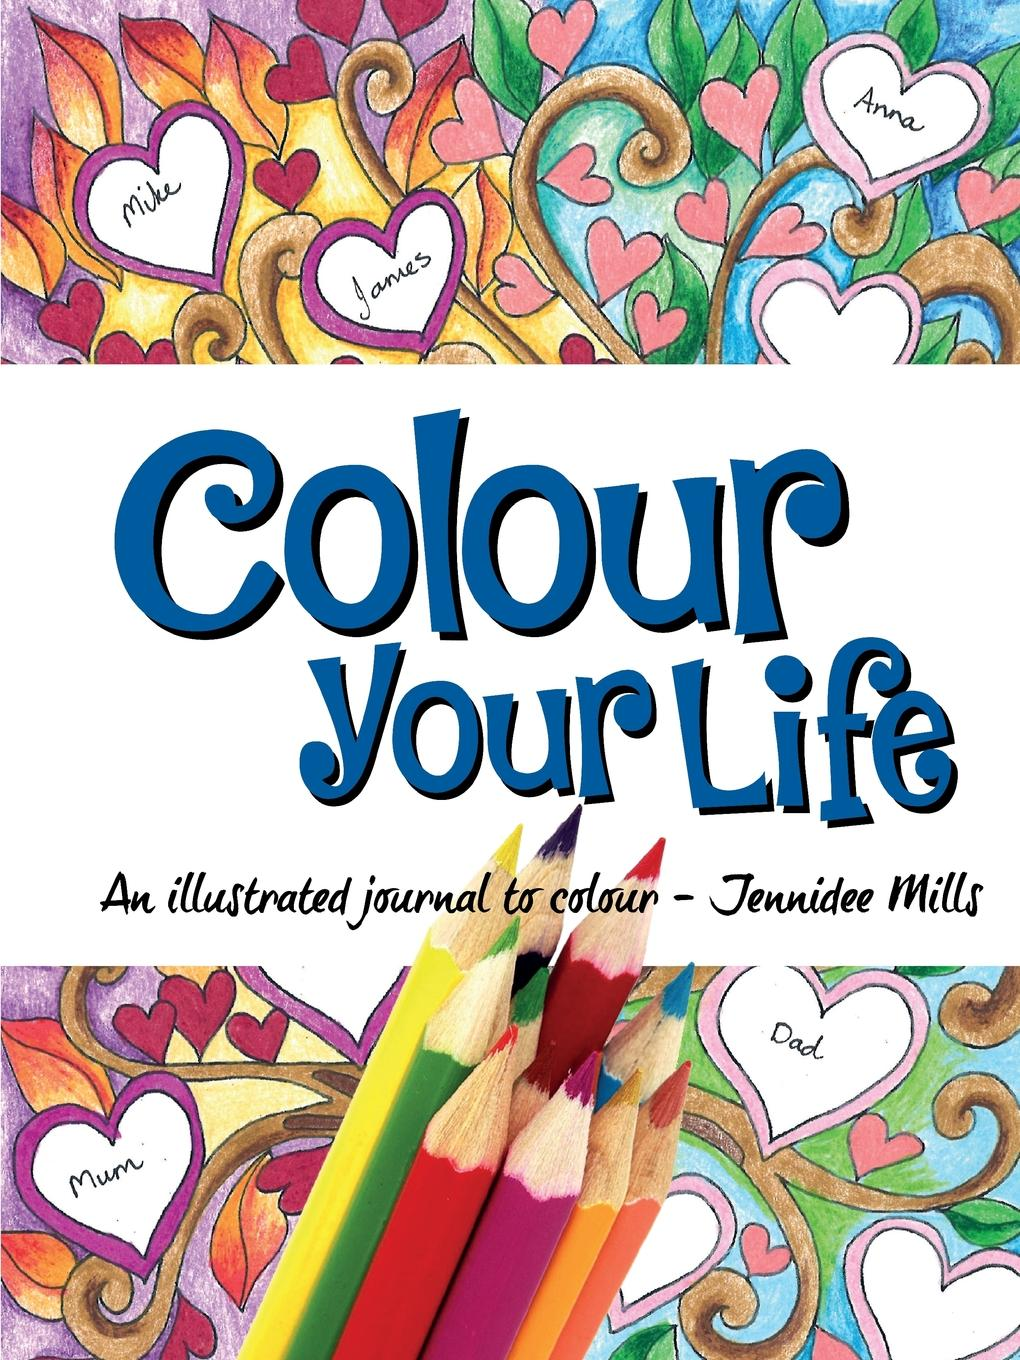 Jennidee Mills Colour Your Life jens brakenhoff life as we know it